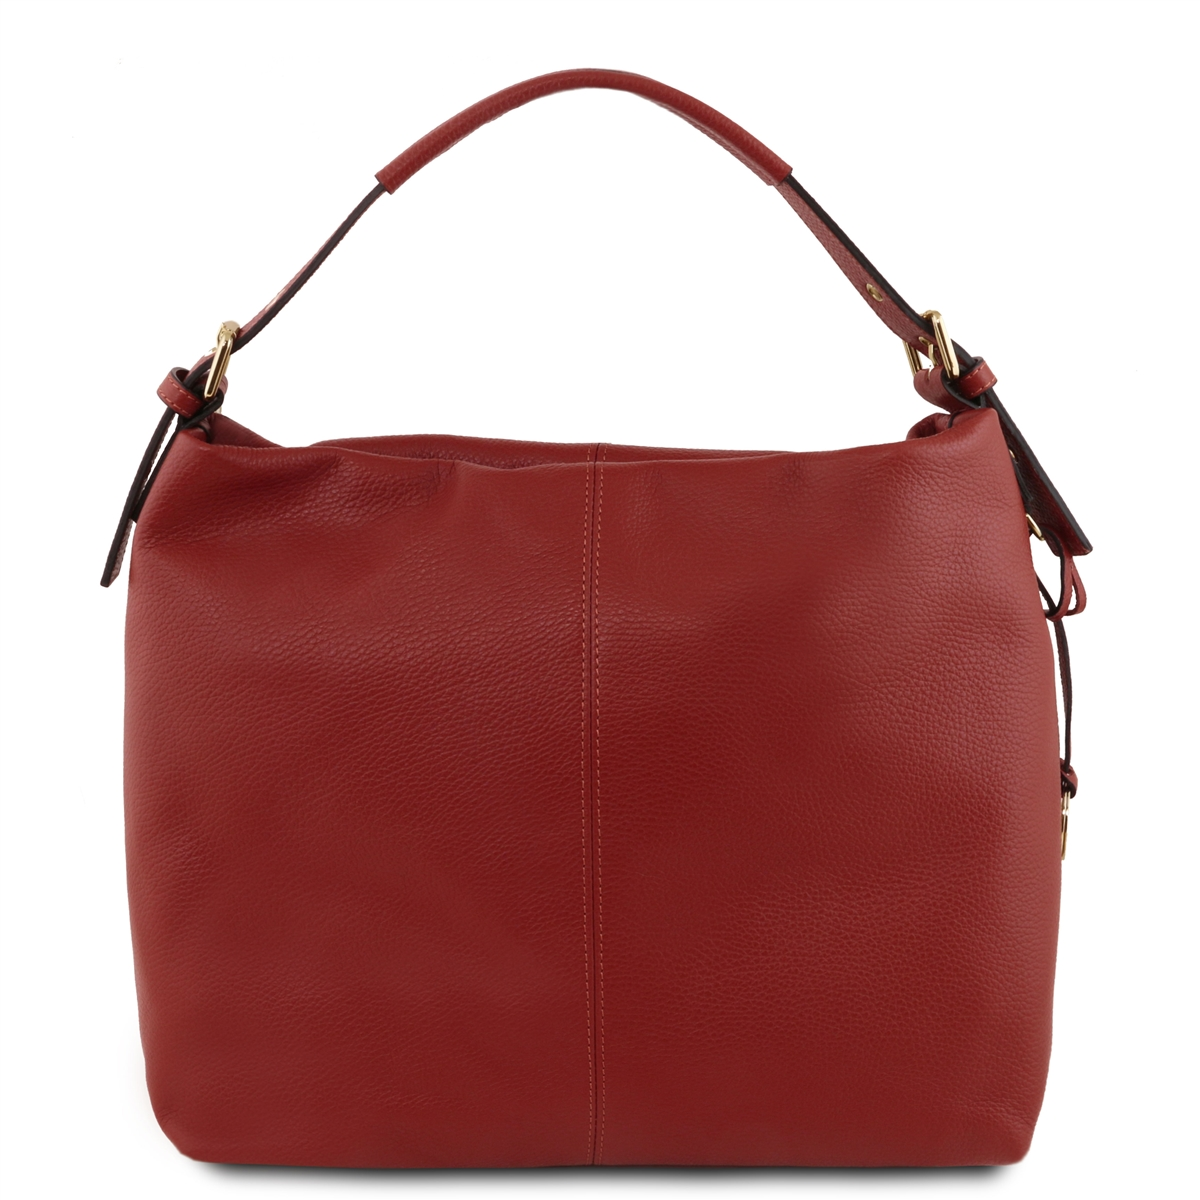 5c727a27183c Tuscany Leather Bag TL141719 Soft Leather Hobo Bag - Red